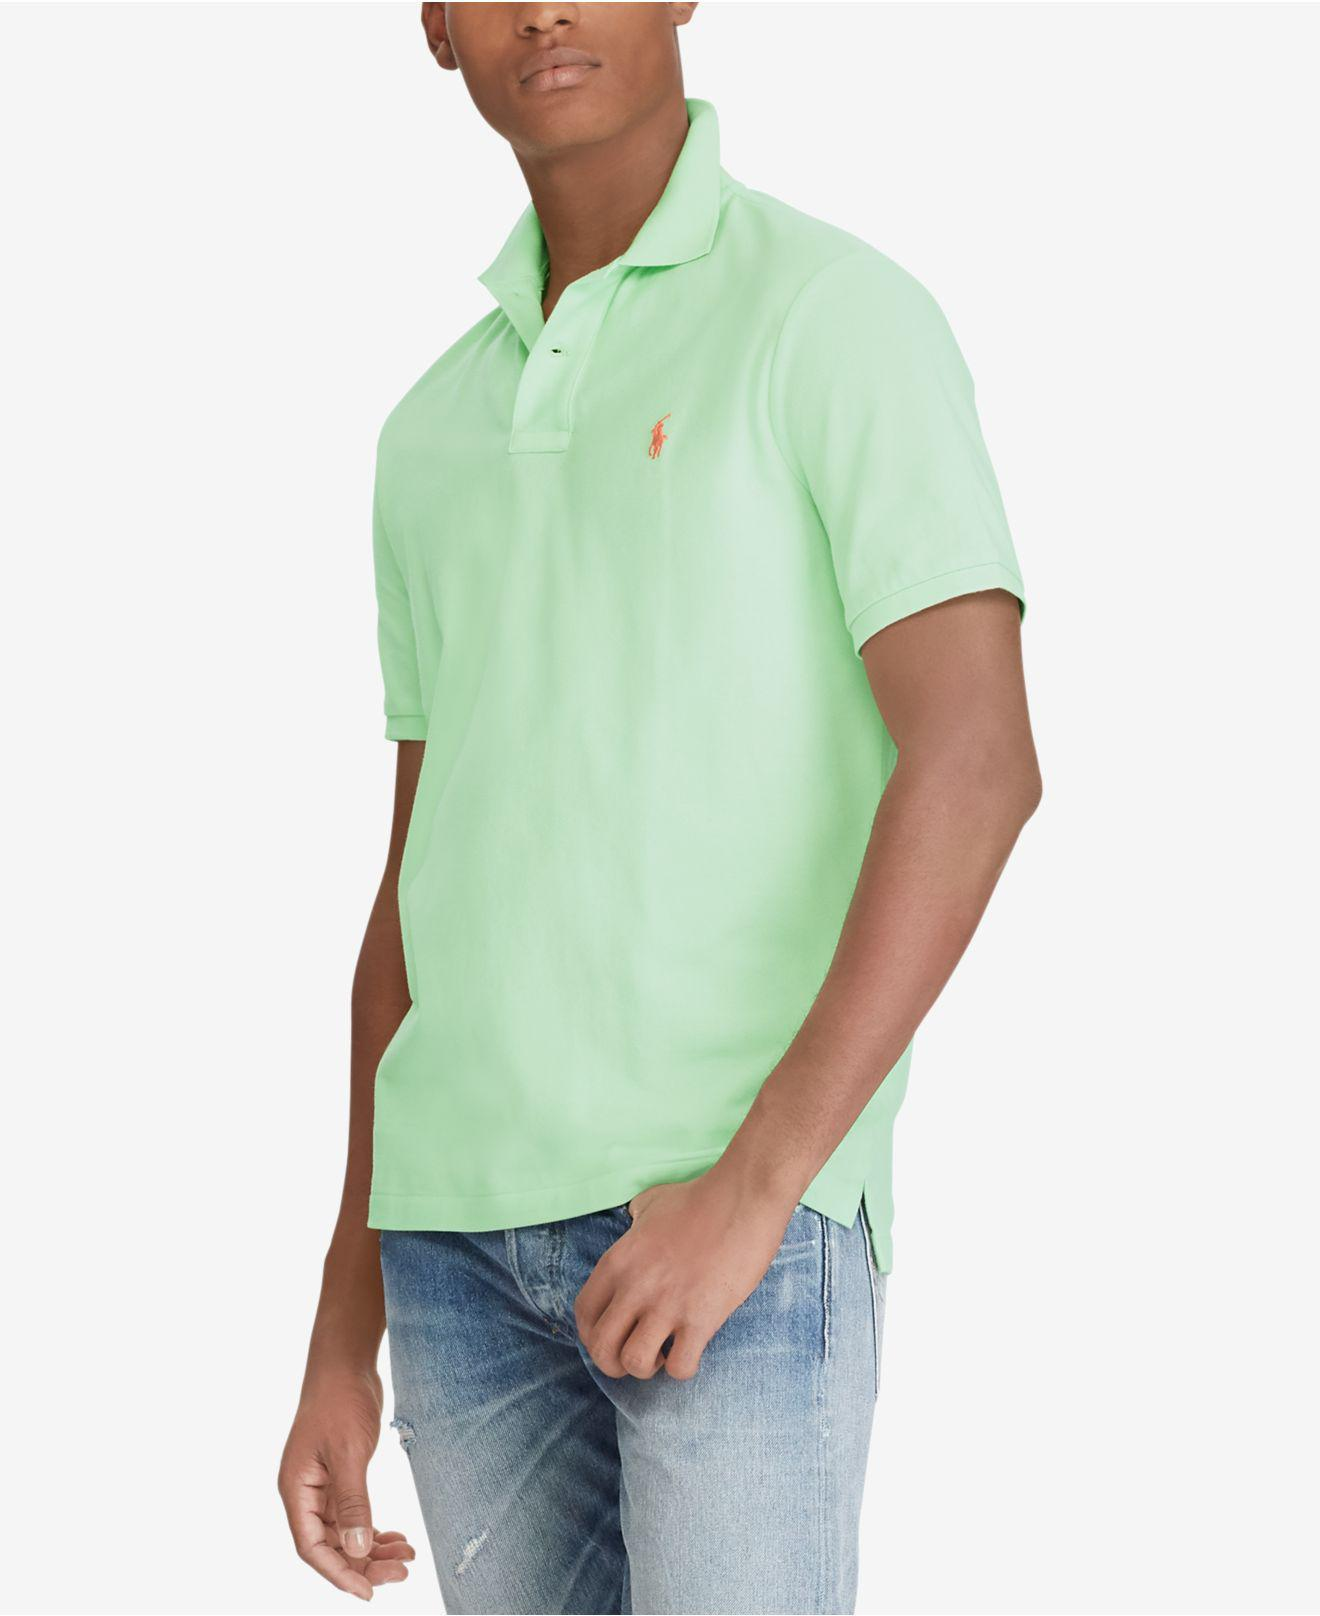 Slim Fit Pique Polo in Lime Green - Cruise lime Polo Ralph Lauren Footlocker Pictures Online Amazing Price Sale Online Free Shipping Best Sale WicAZ5BgrI